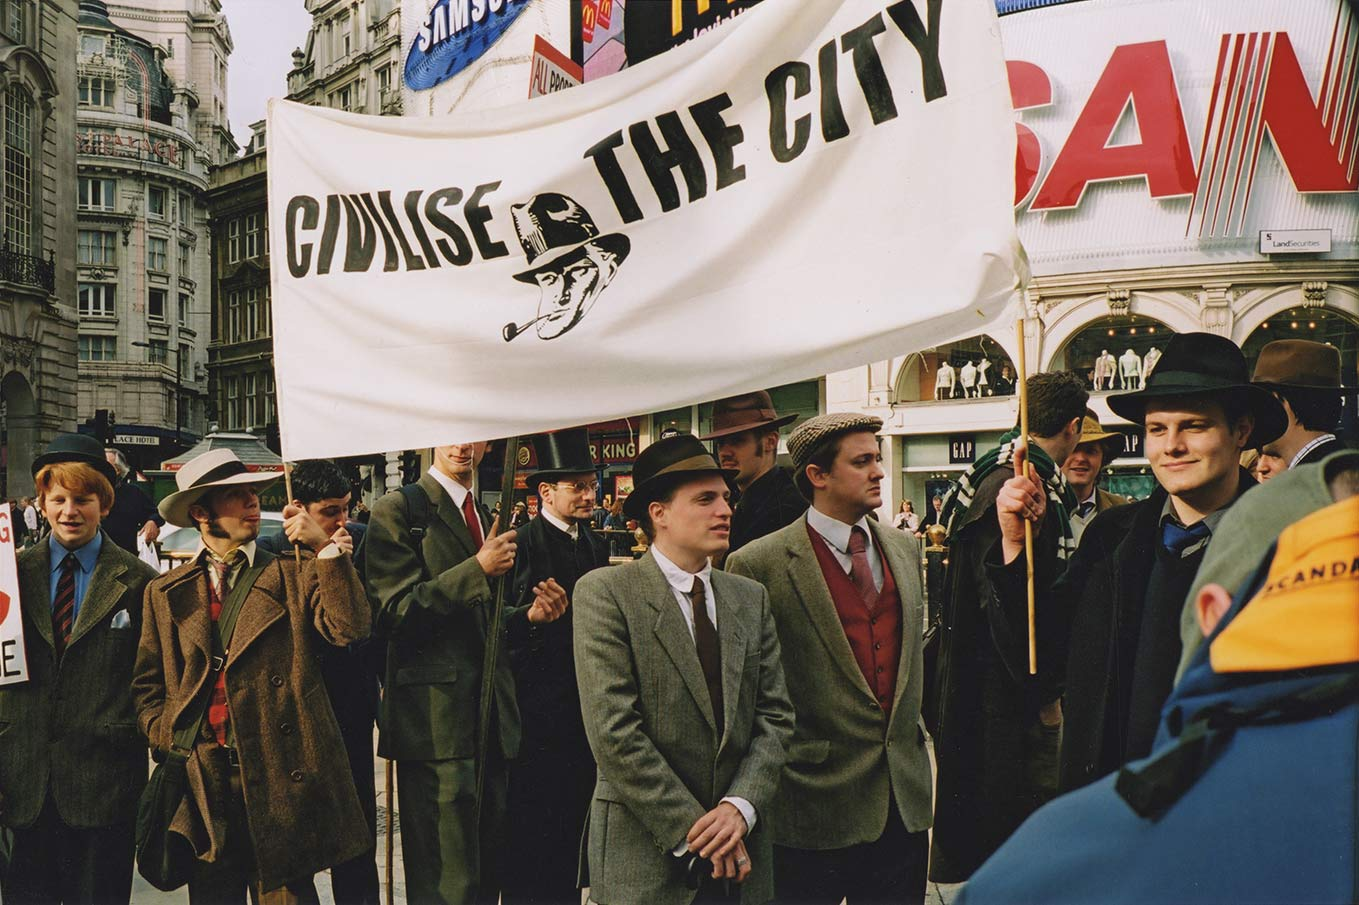 Civilise the City Chap Protest